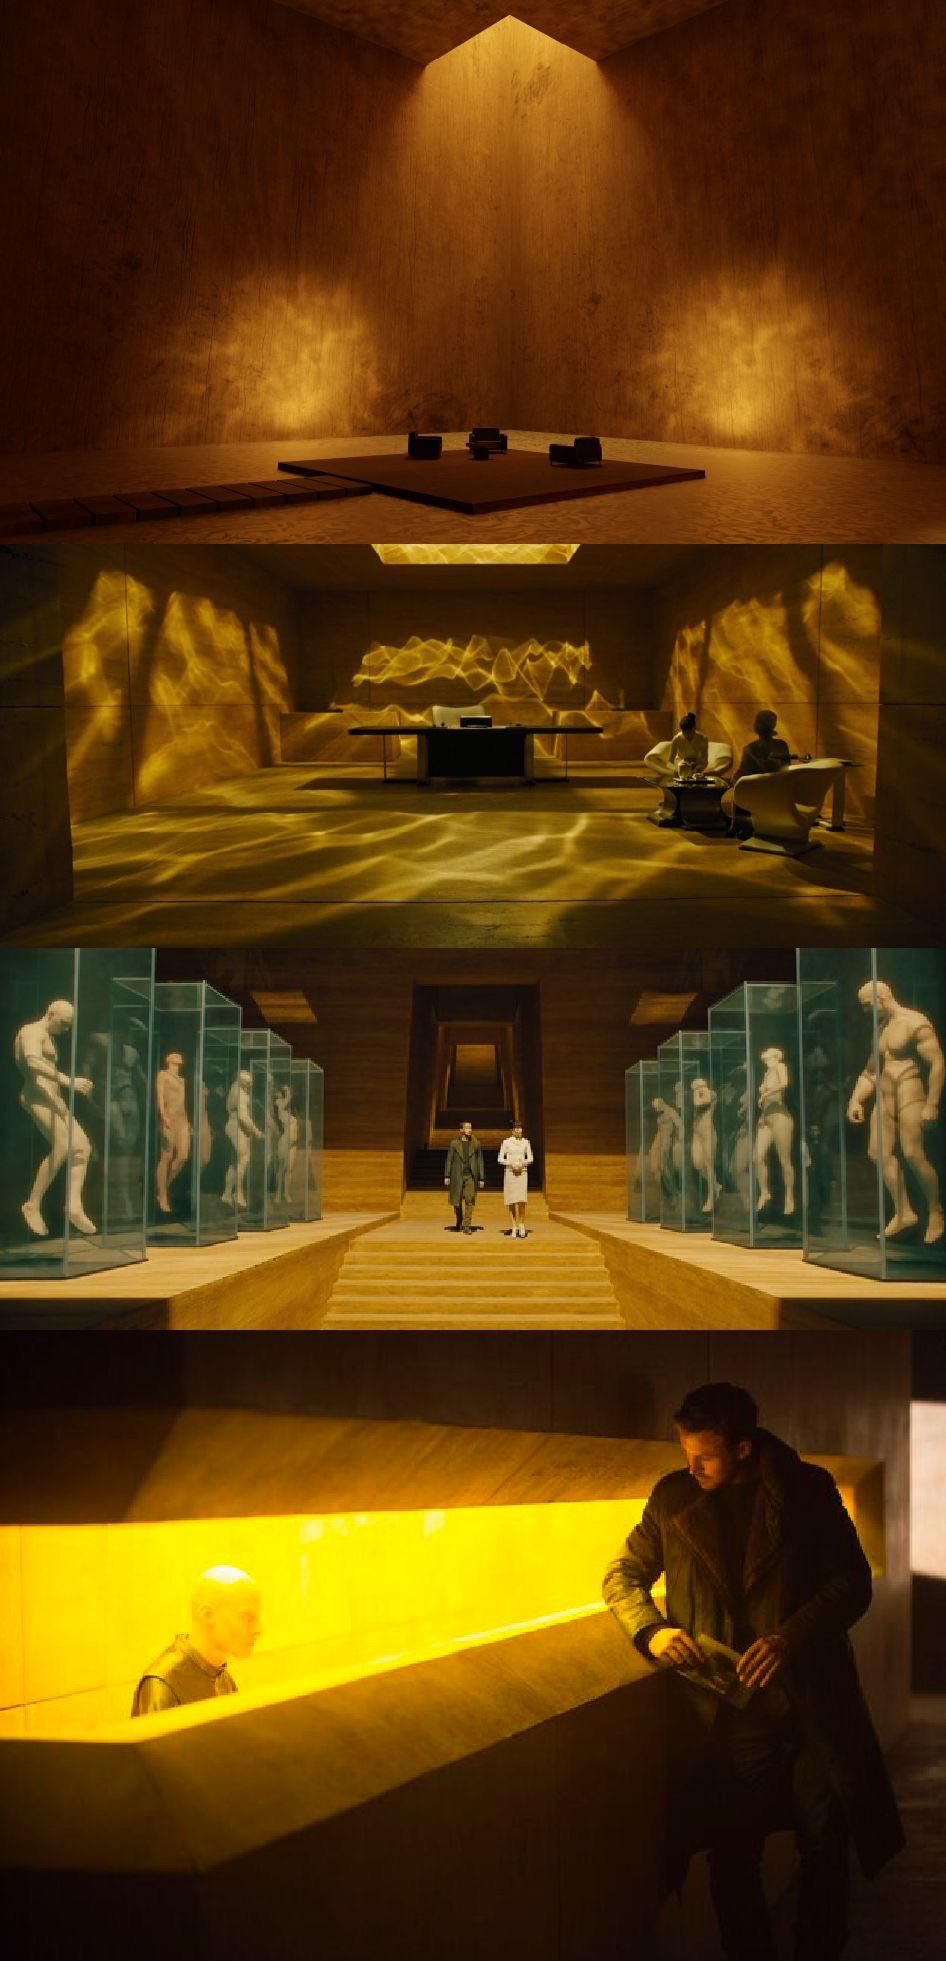 In Blade Runner 2049 2017 Niander Wallace S Headquarters Are Made Of Wood A Rare And Very Expensive Material In 2049 T In 2020 Blade Runner Color In Film Movie Shots